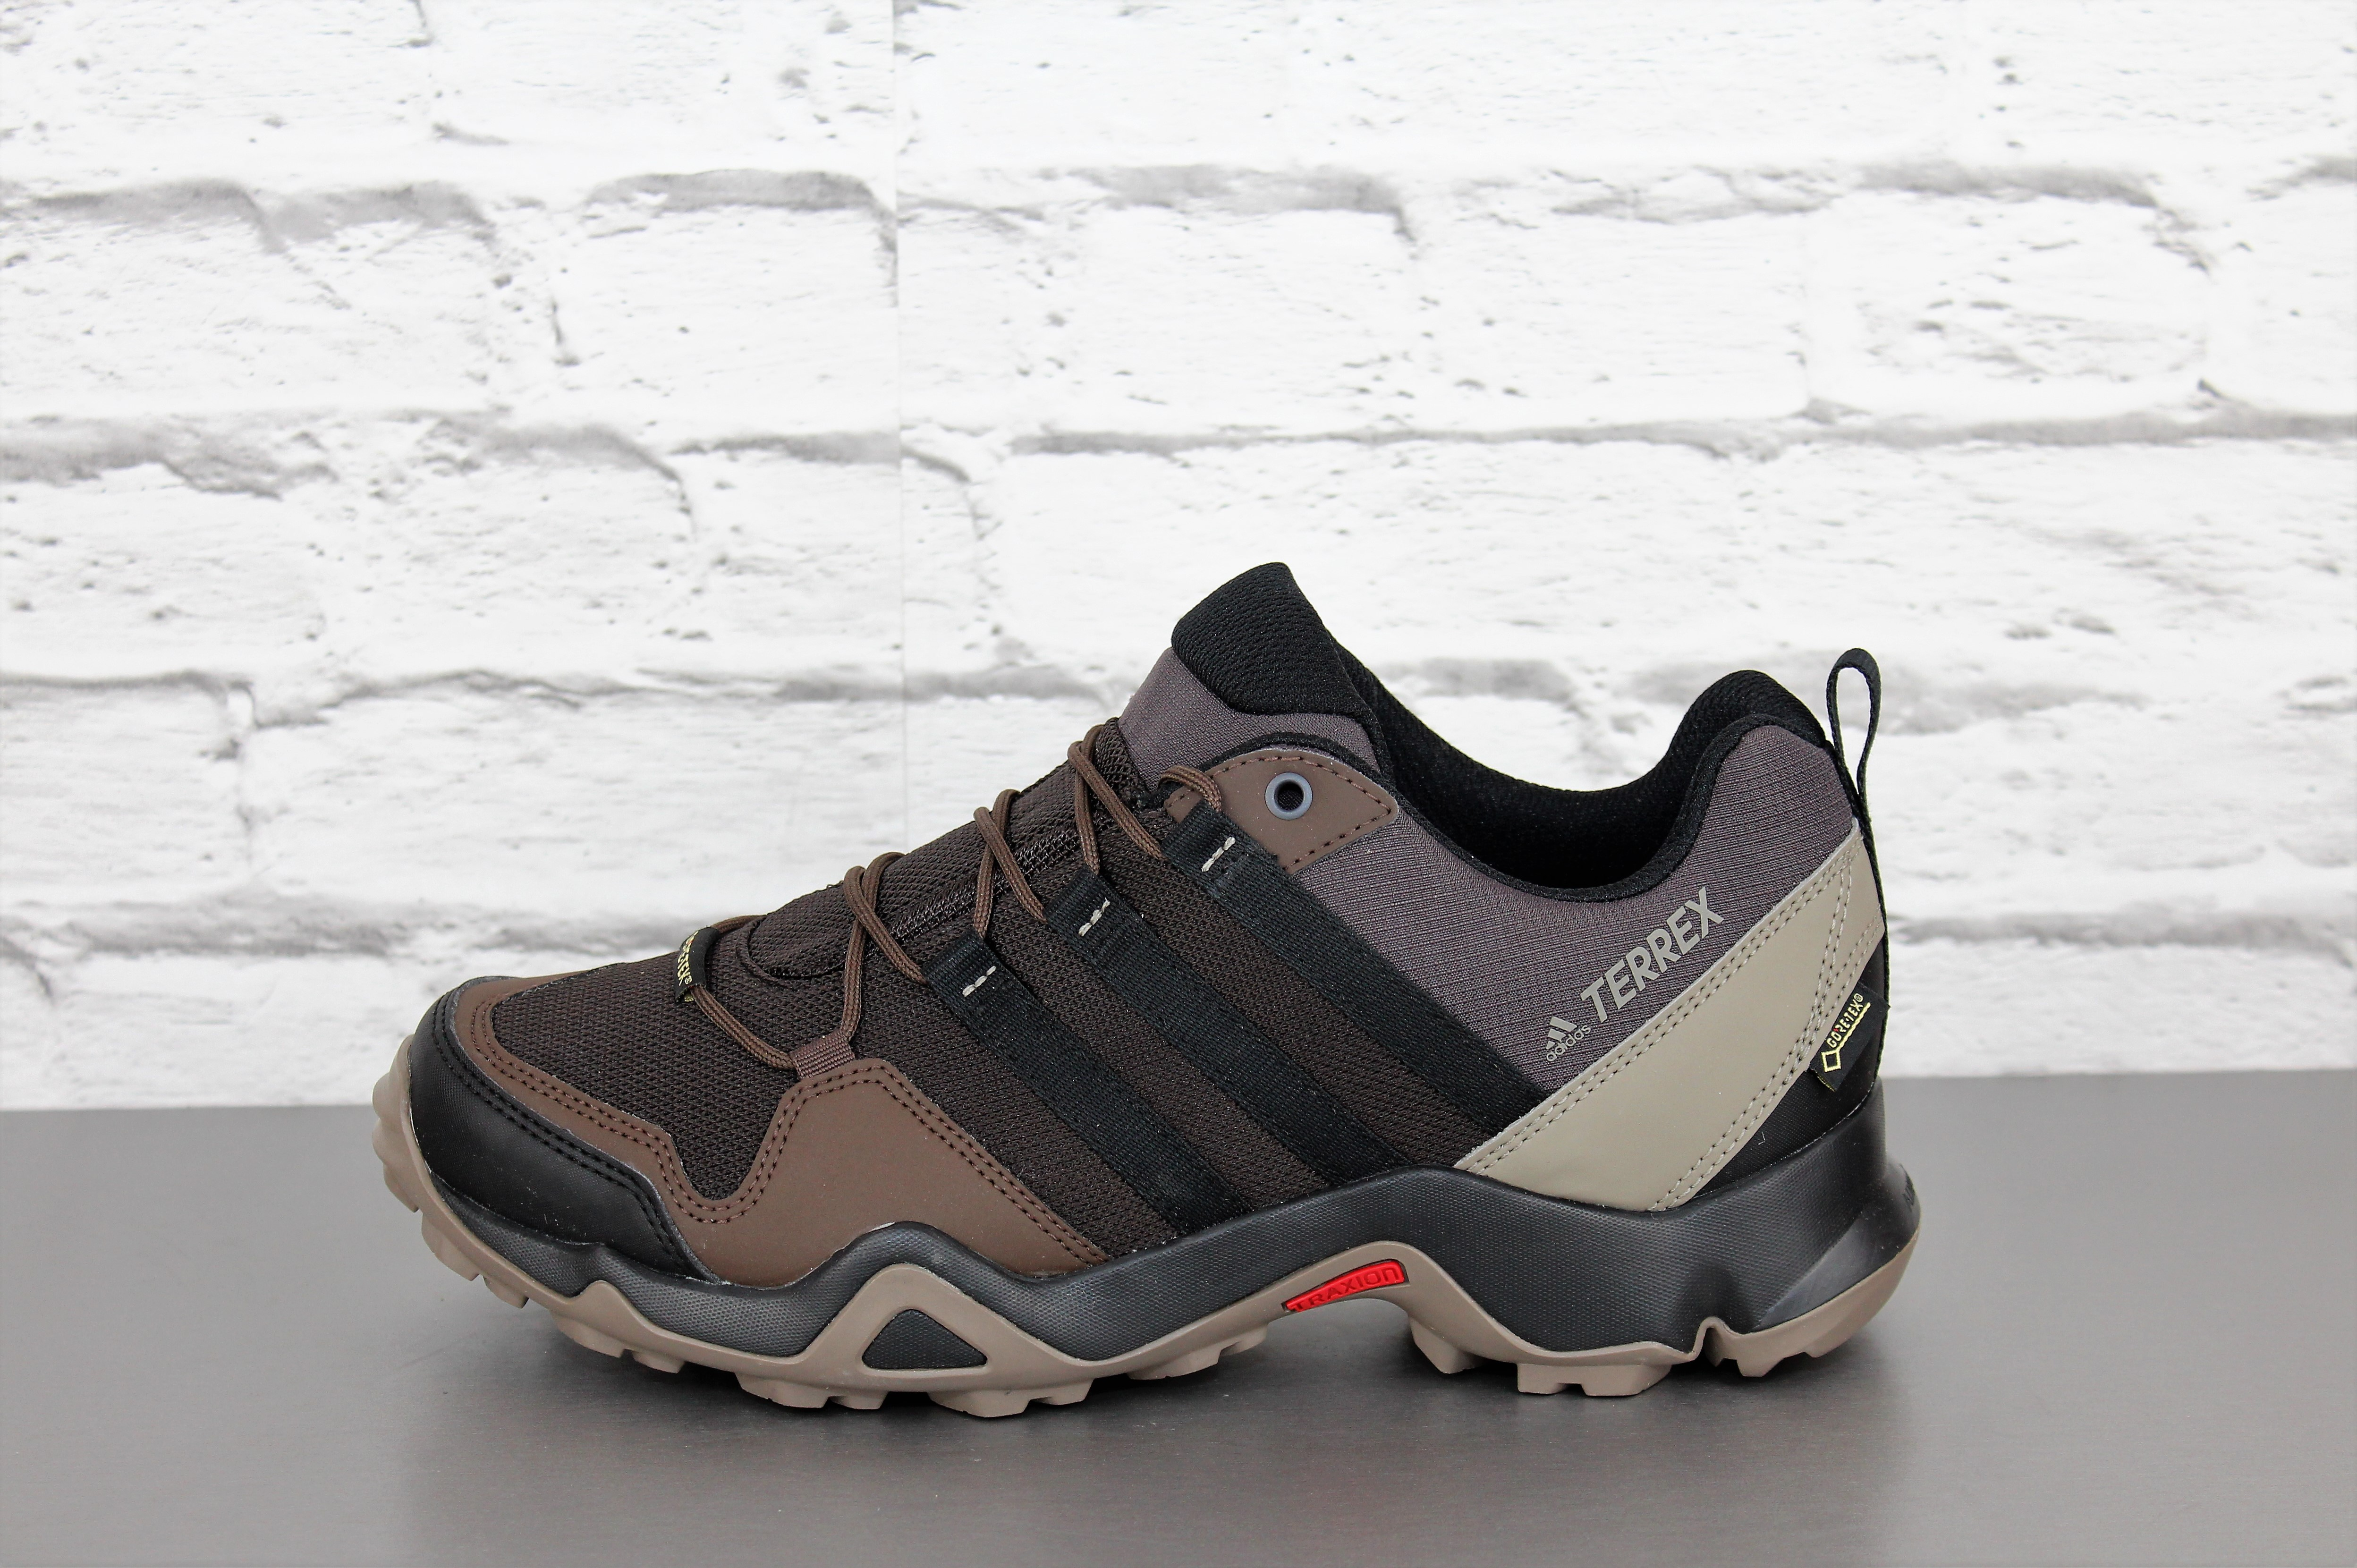 wholesale dealer e9308 3c4f7 ADIDAS TERREX ax2r GTX bb1987 SNEAKERS TREKKING ALL APERTO SCARPE  escursionismo